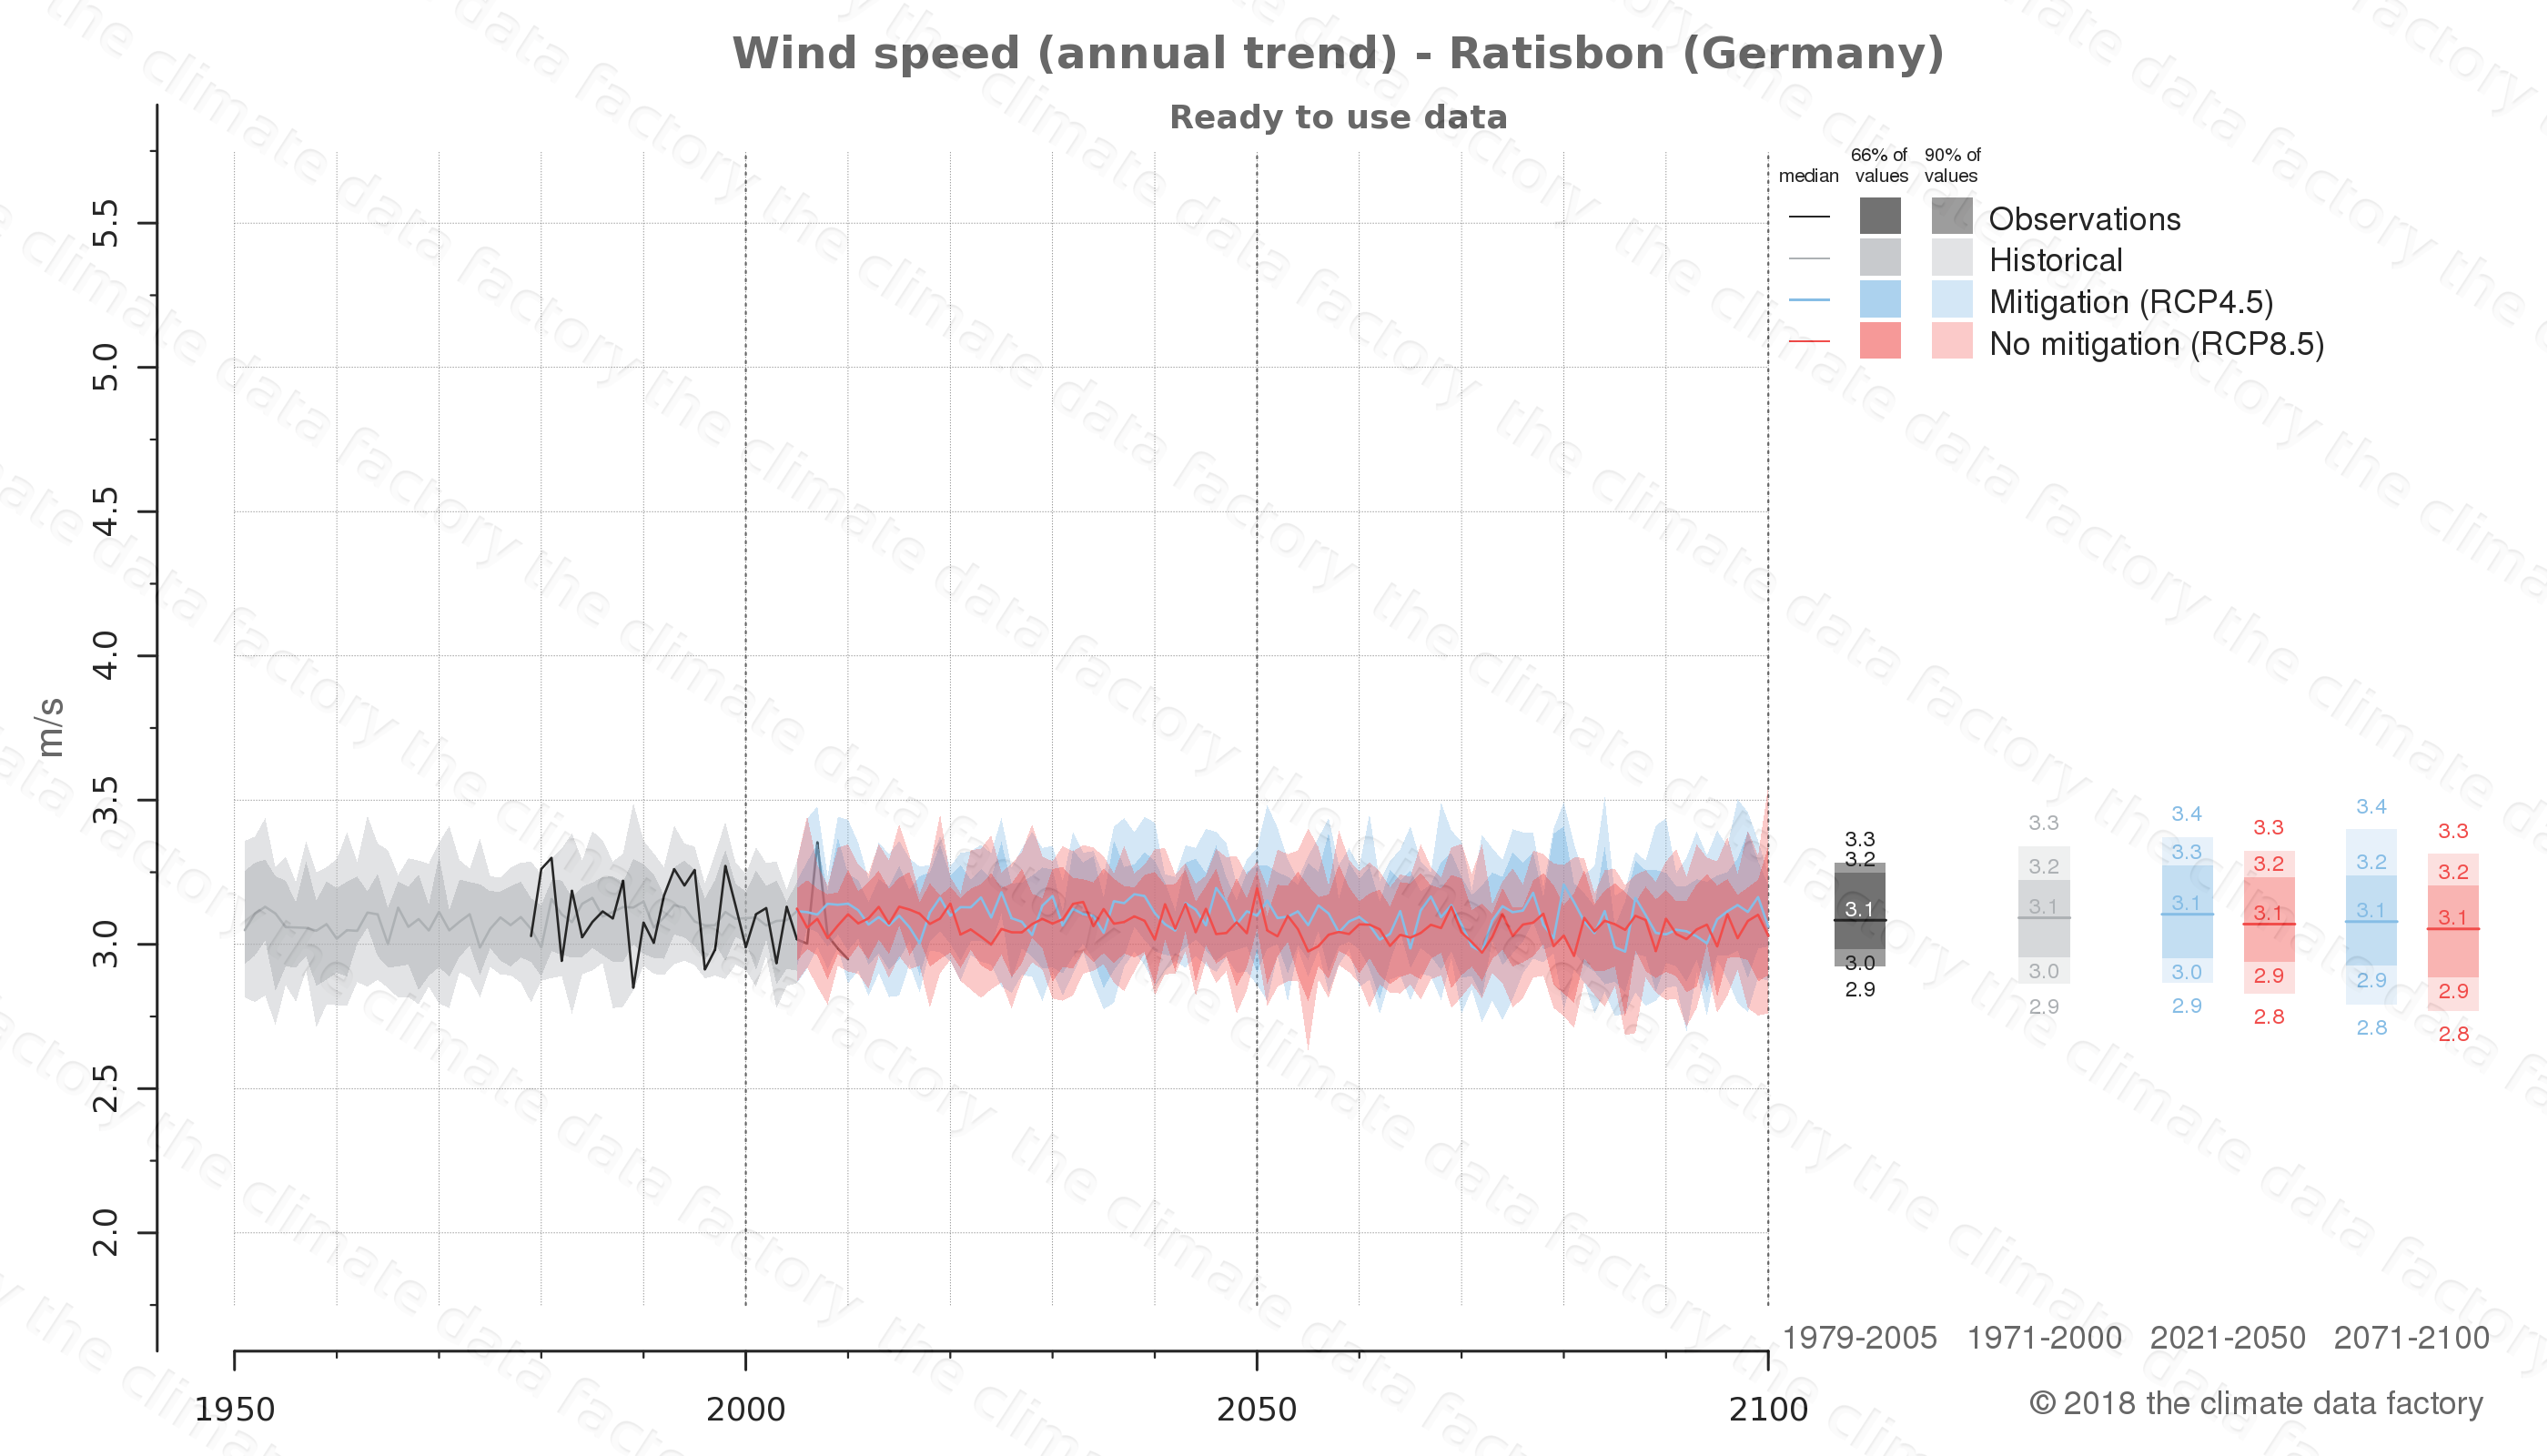 climate change data policy adaptation climate graph city data wind-speed ratisbon germany